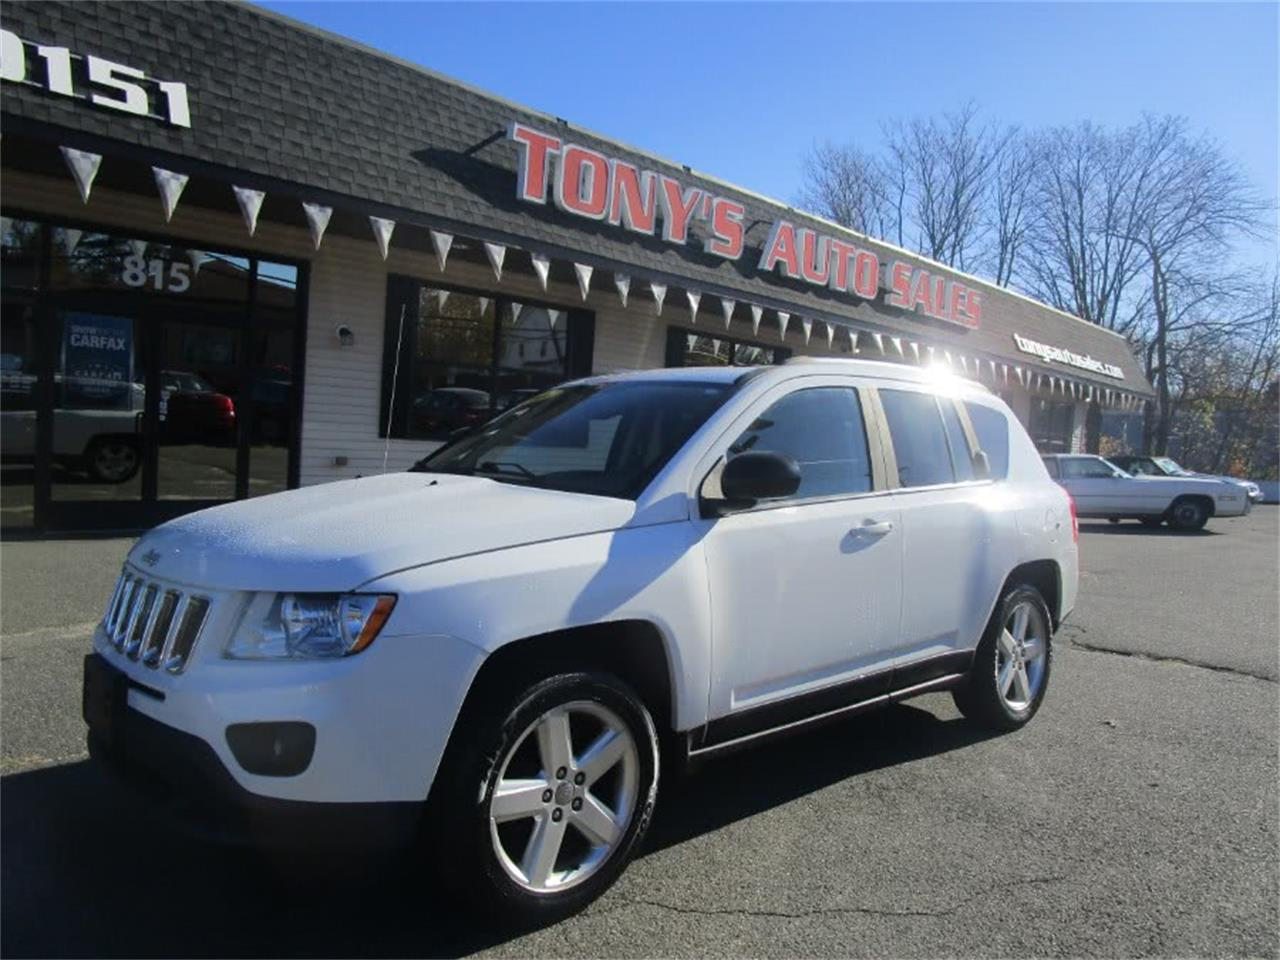 for sale 2011 jeep compass in waterbury, connecticut cars - waterbury, ct at geebo